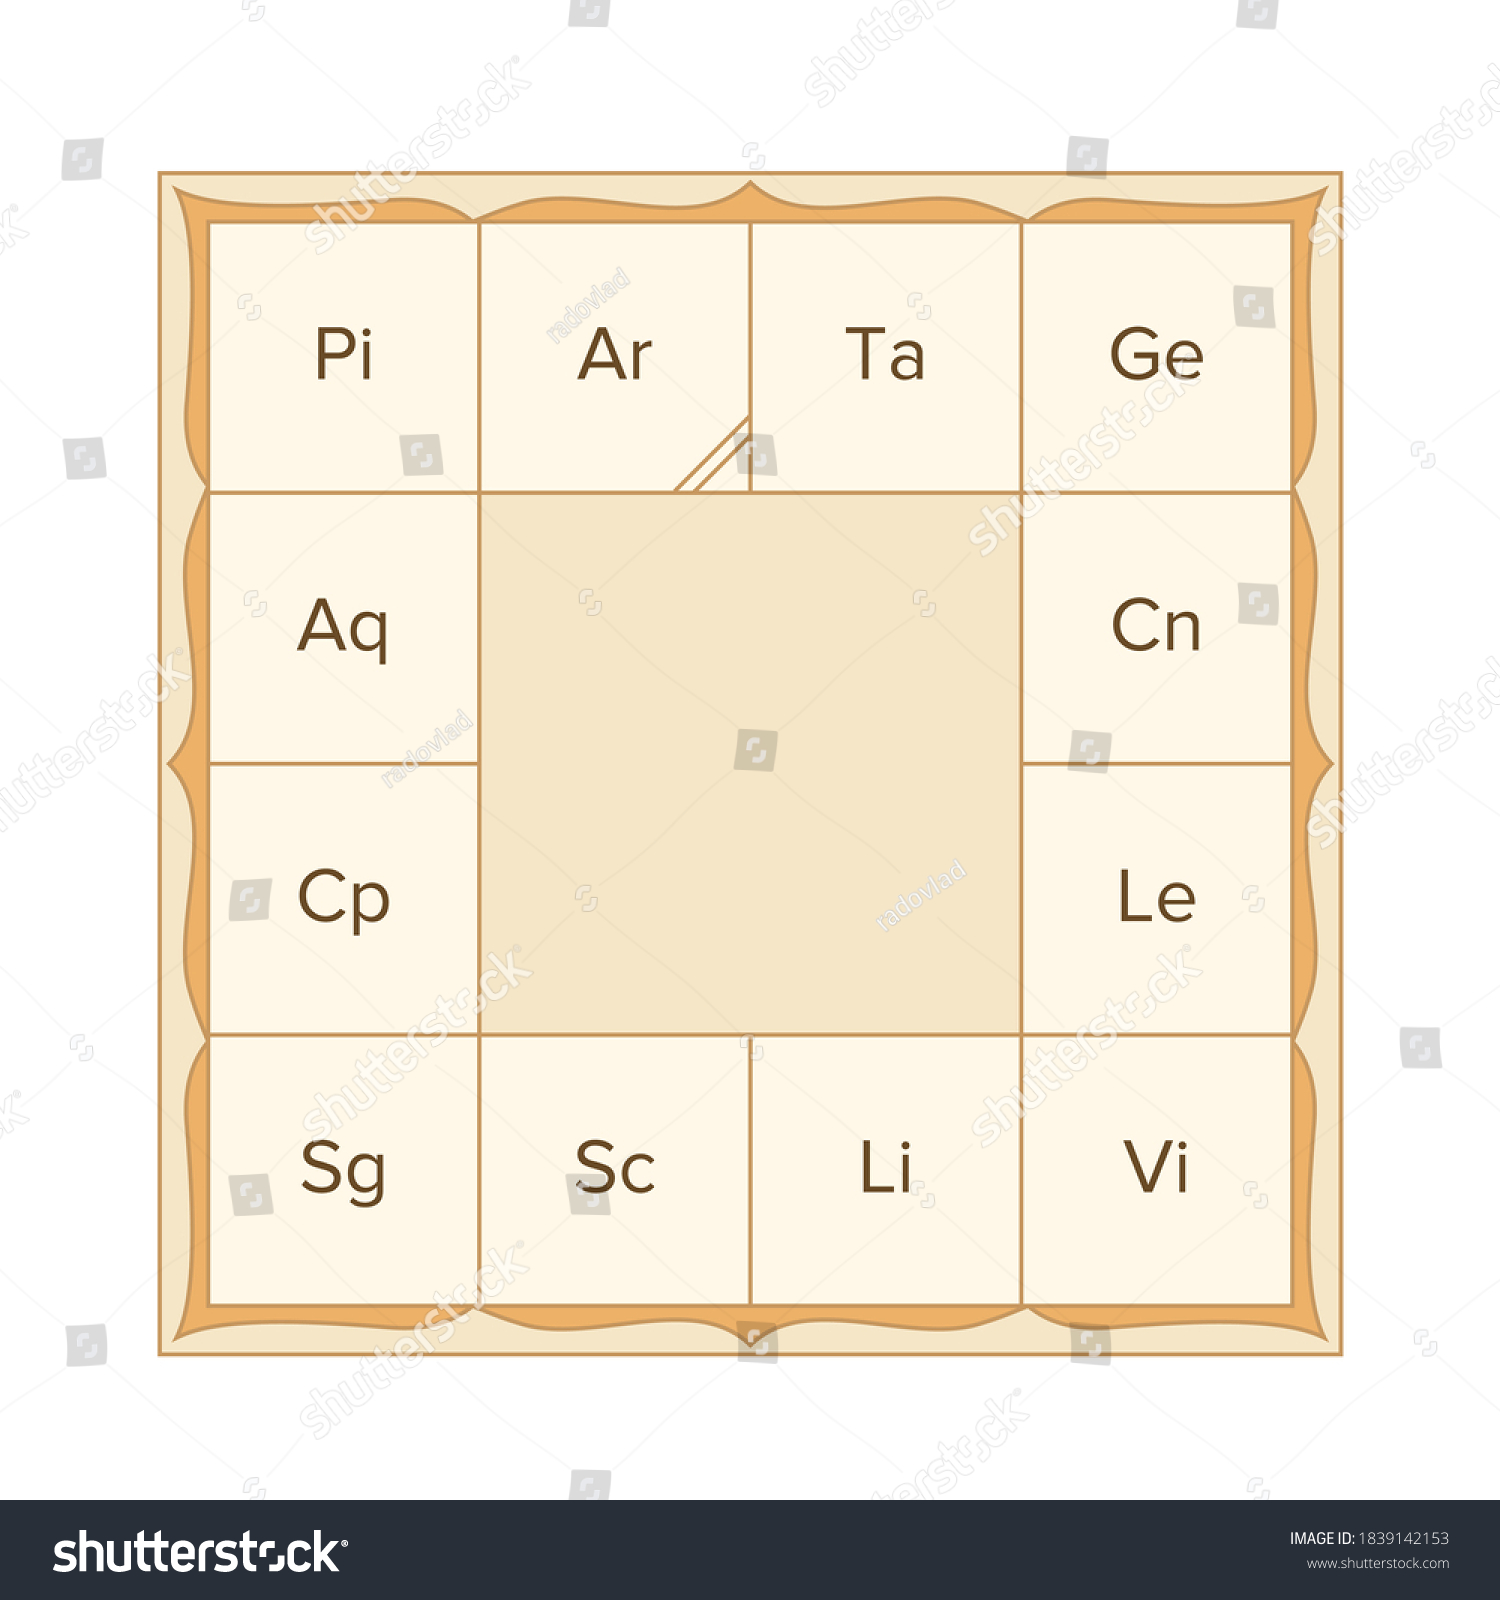 Vedic Astrology Birth Chart Template South Stock Vector Royalty ...